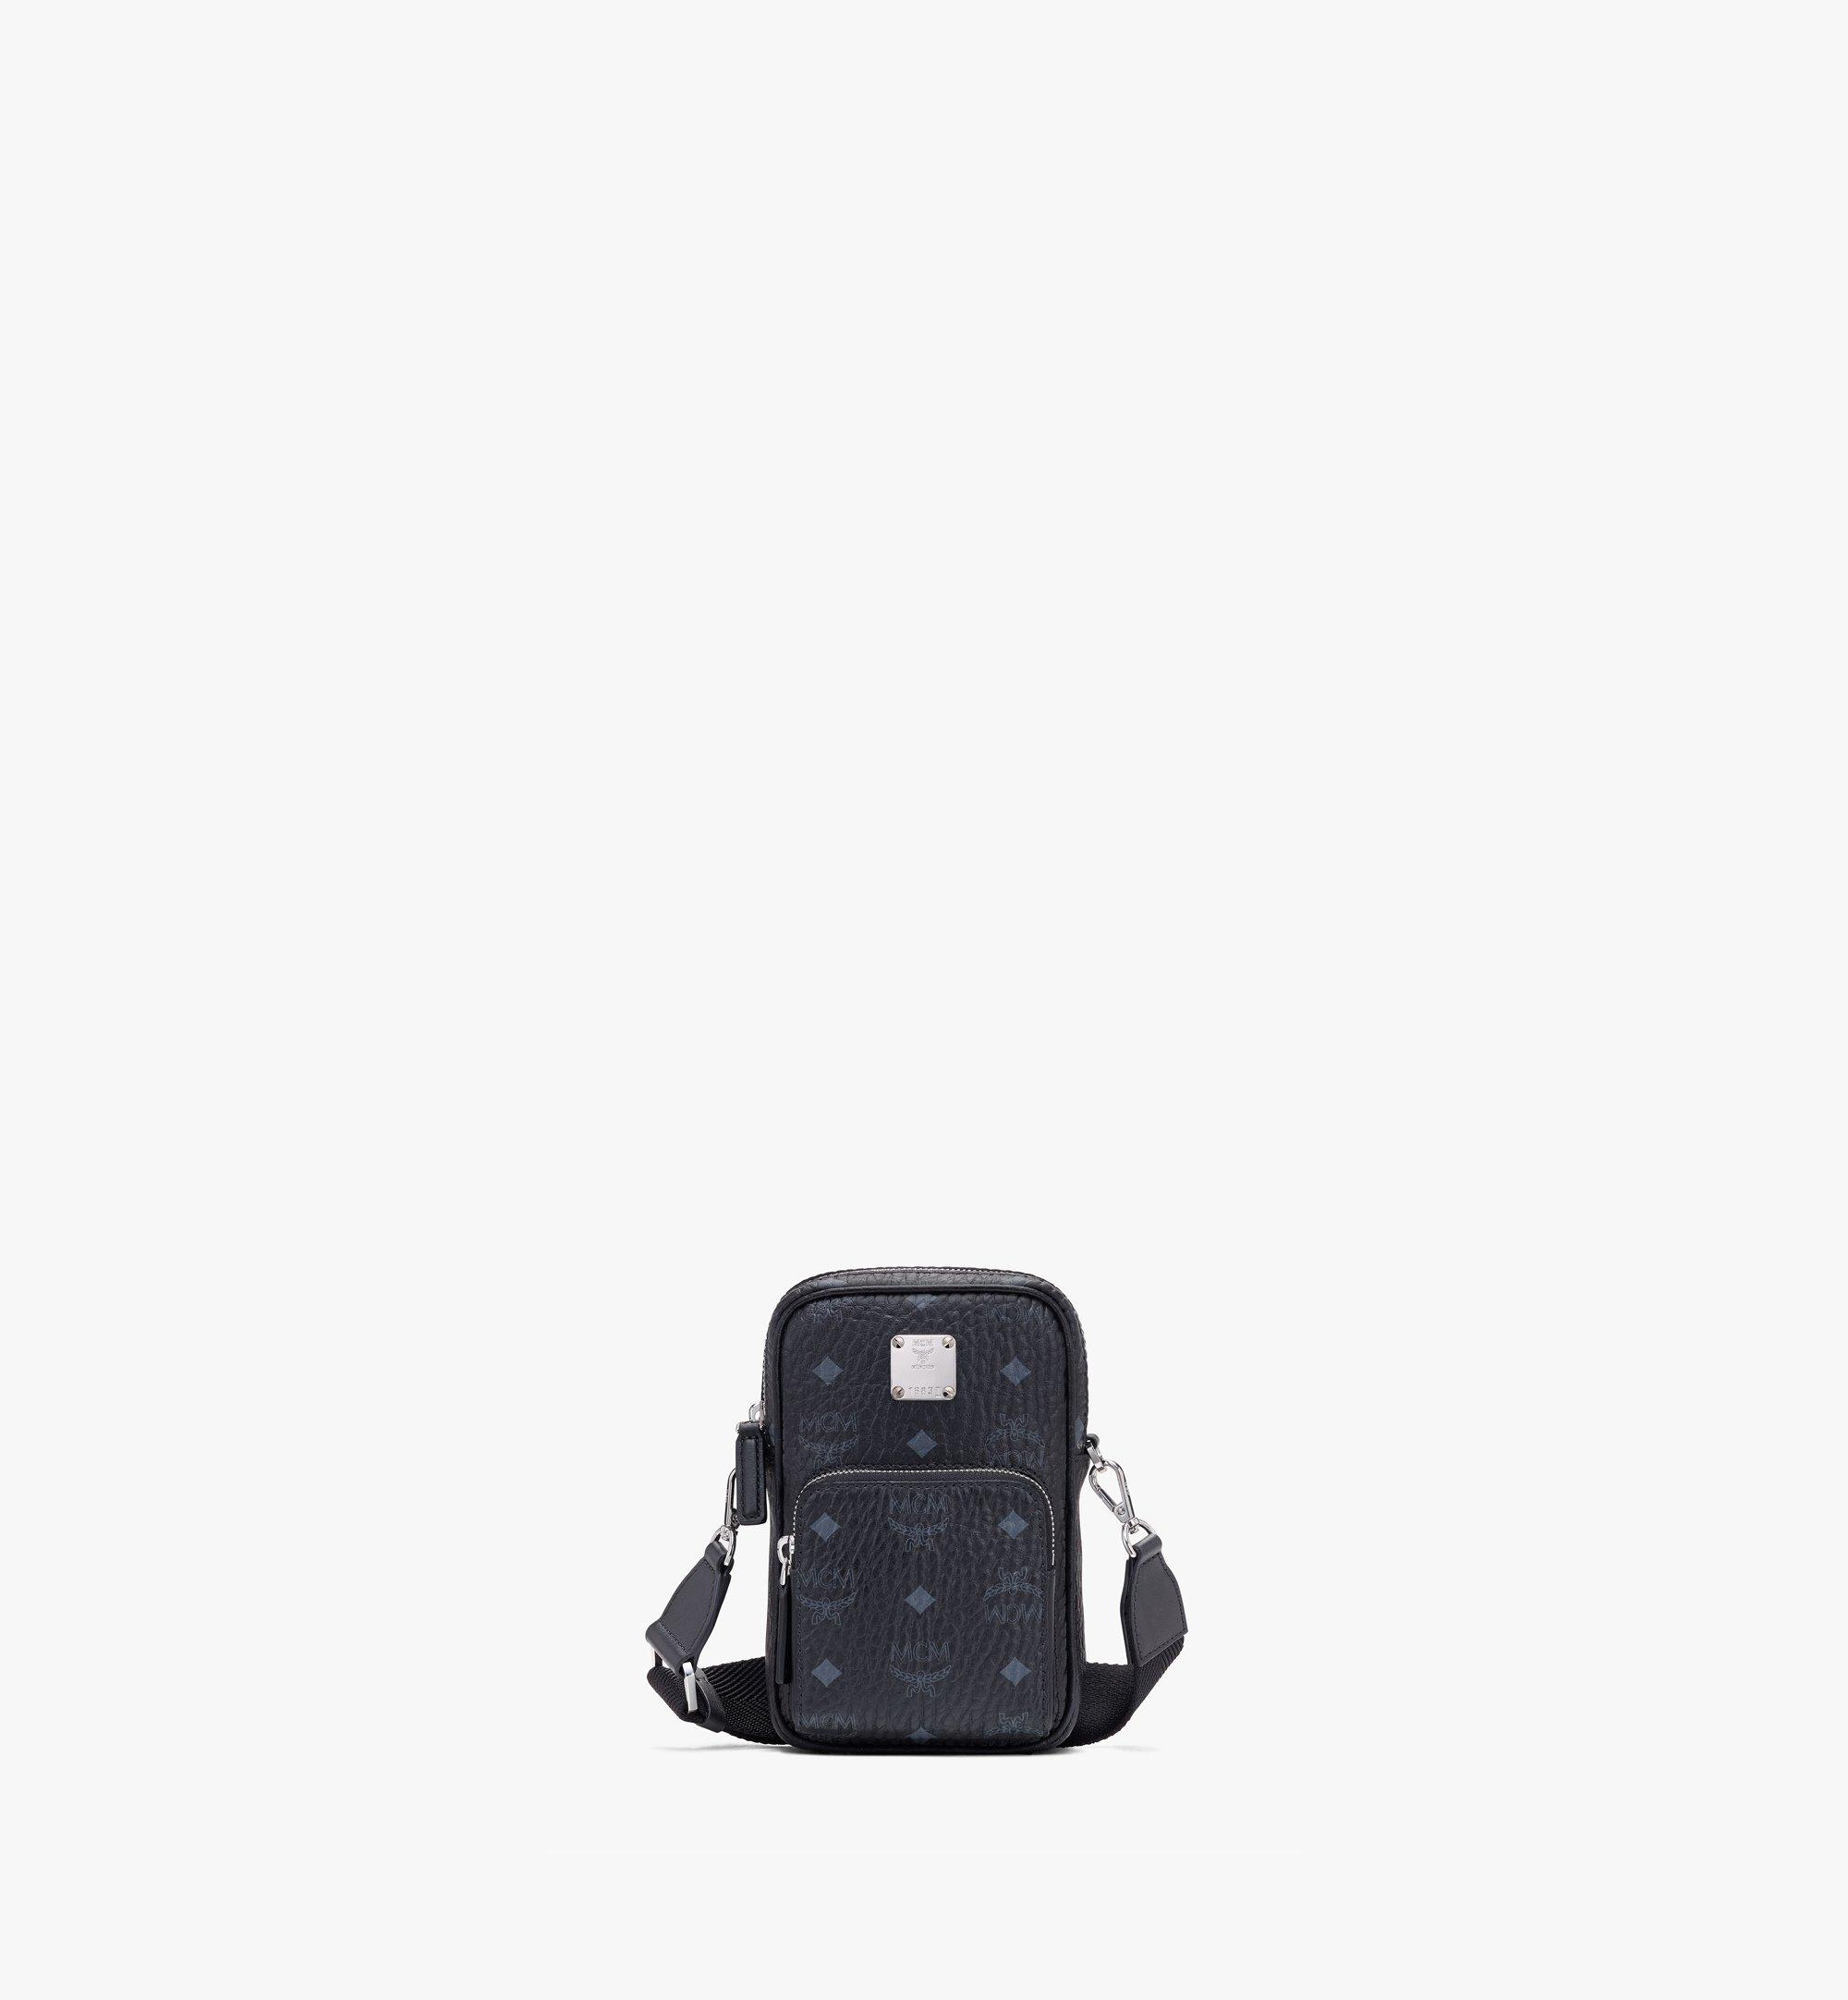 MCM Tech Crossbody in Visetos Black MMRASVI02BK001 Alternate View 1